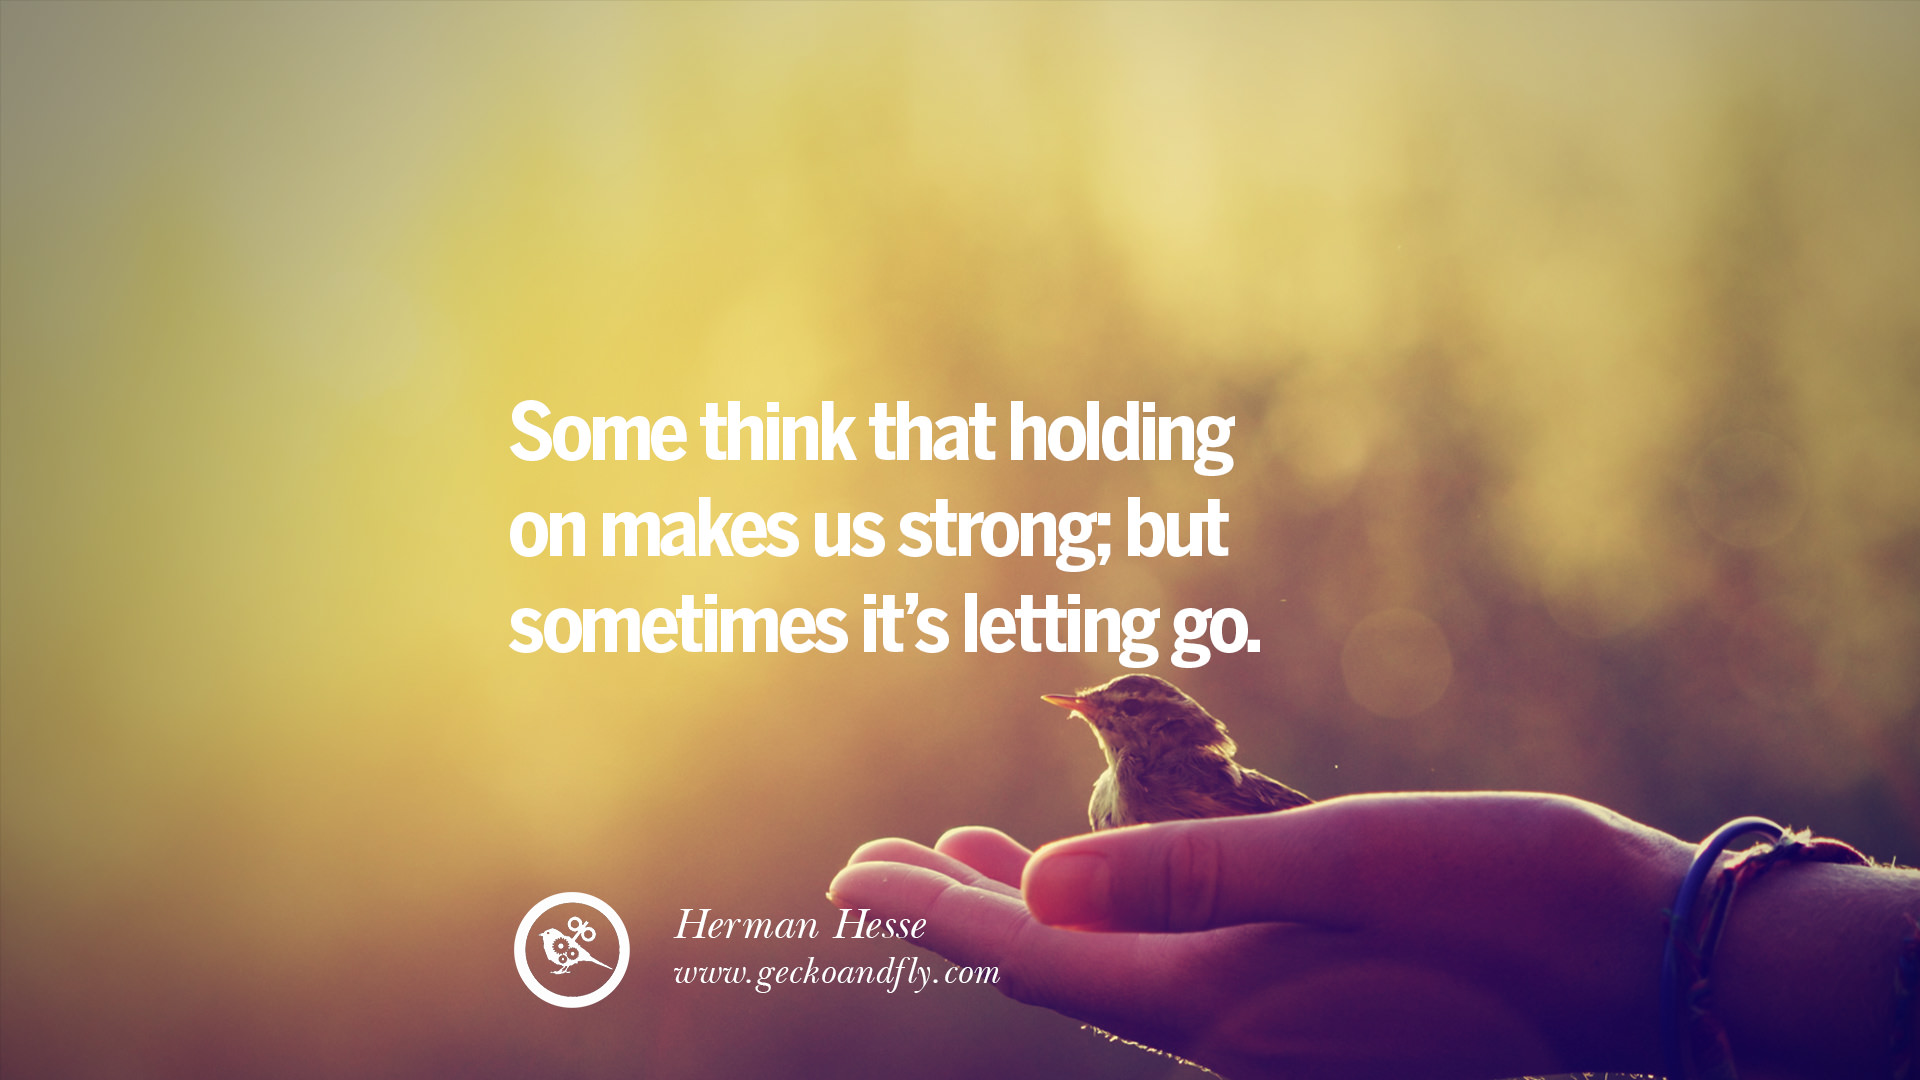 50 Quotes About Moving On And Letting Go A Bad Break Up